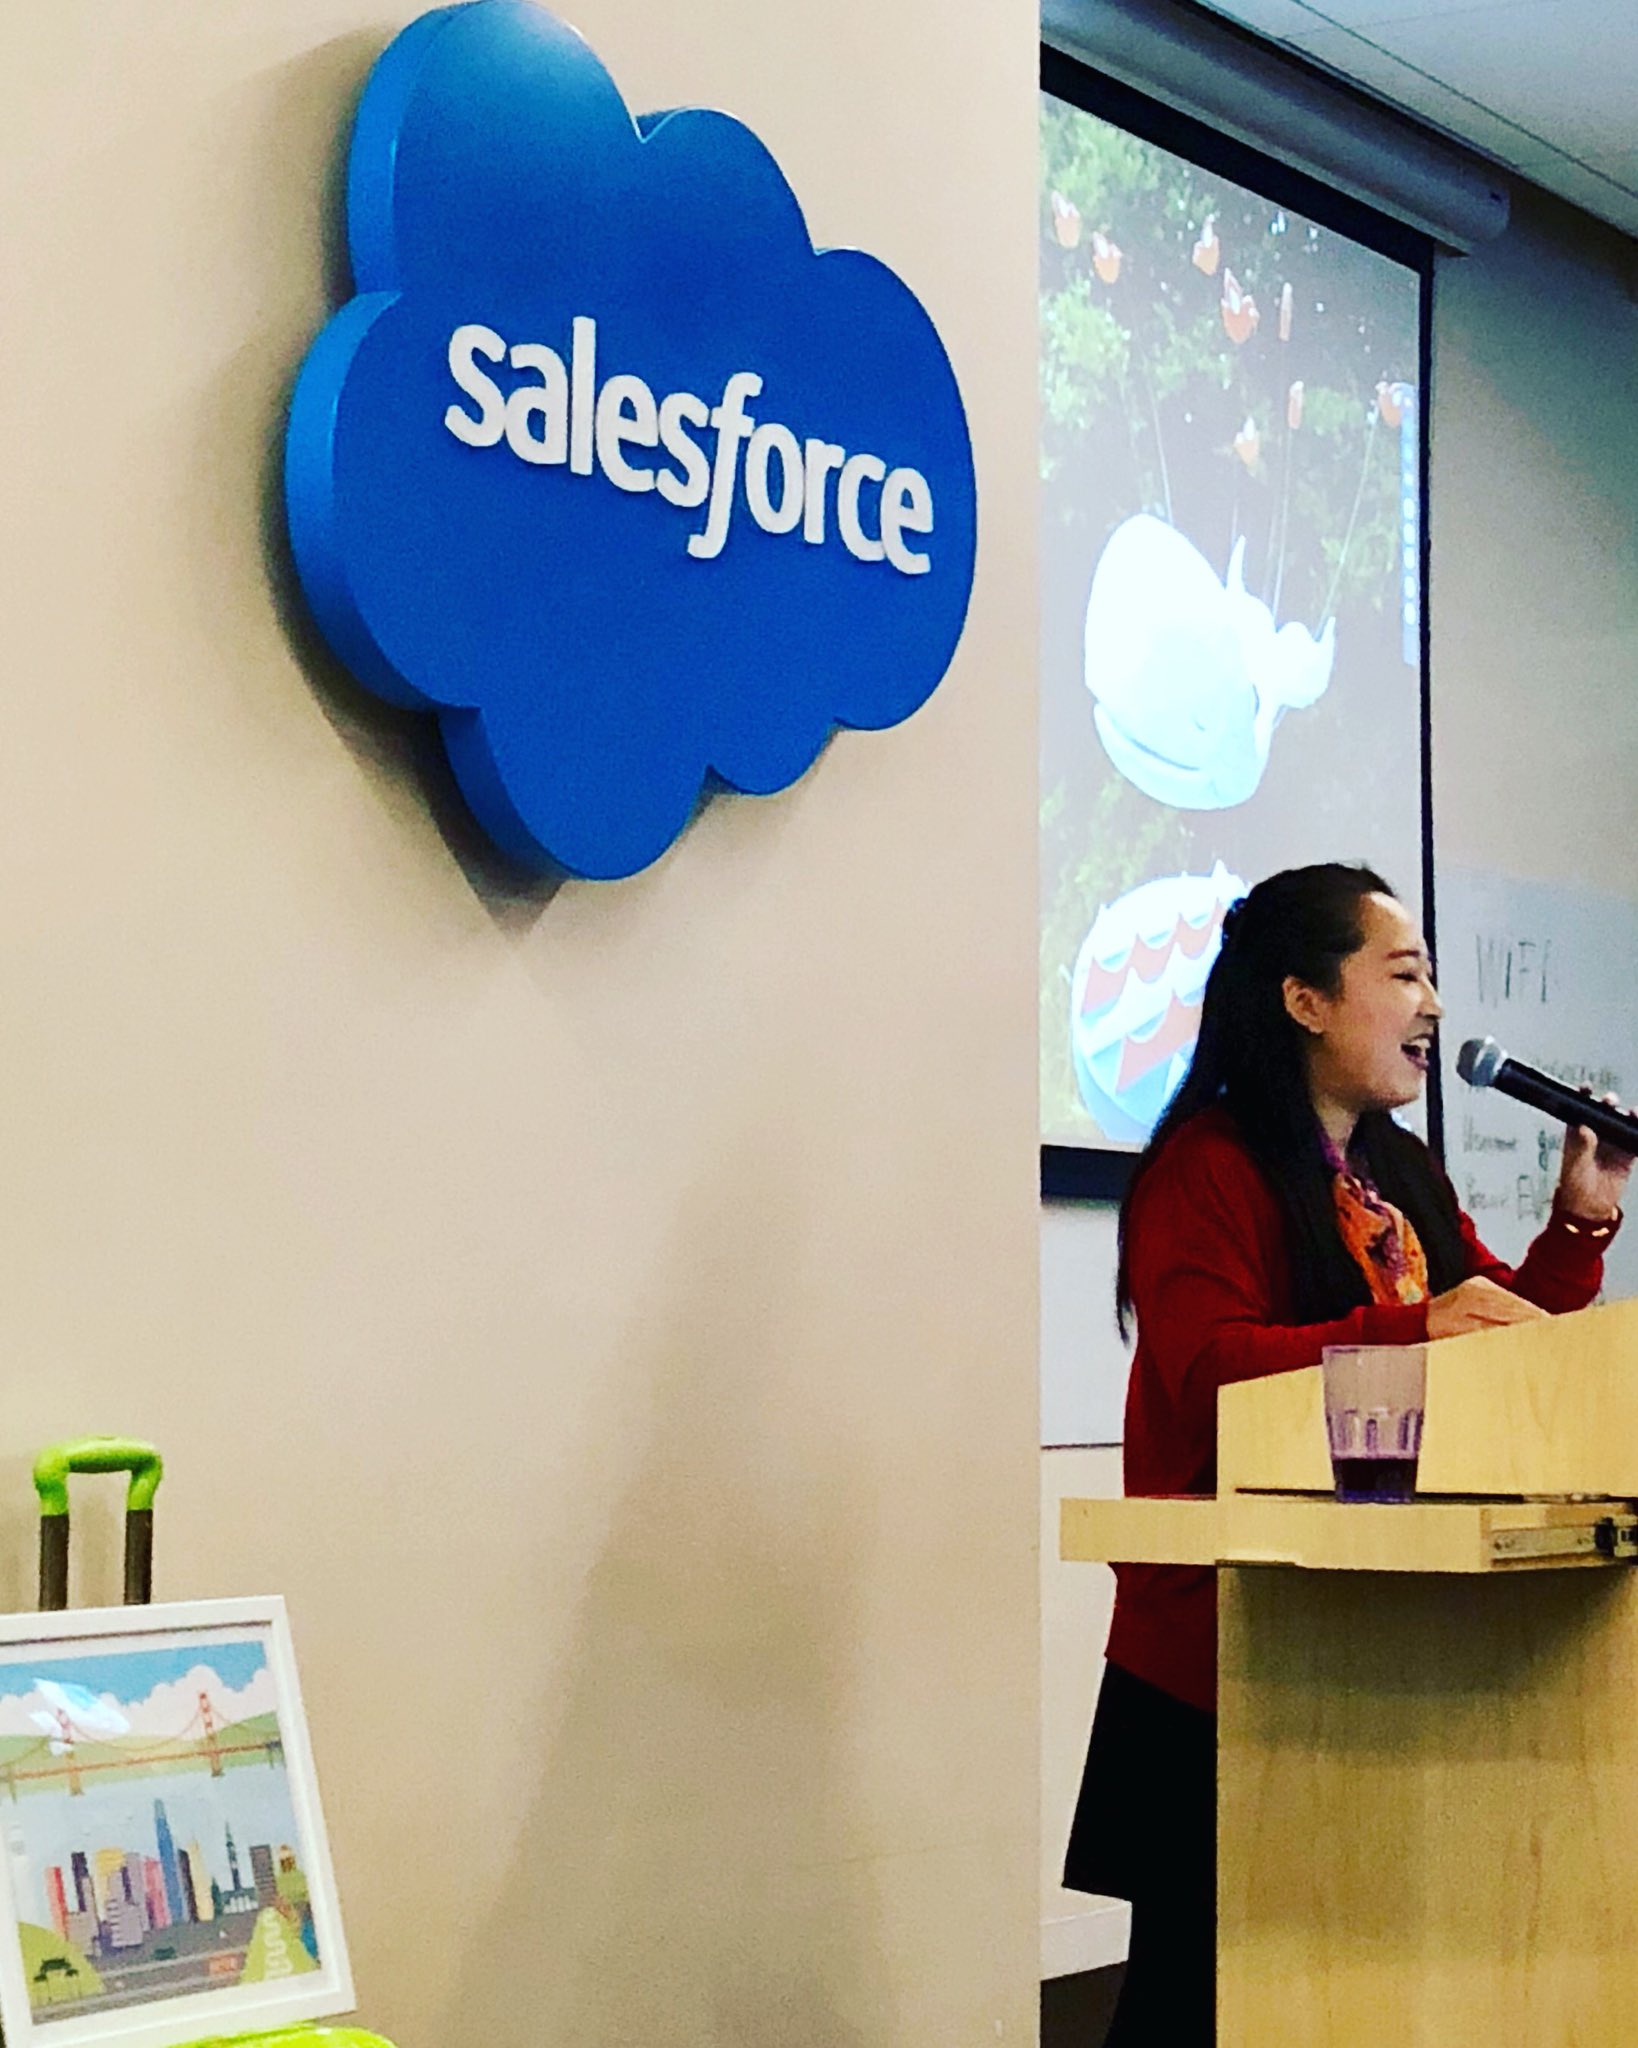 Thank you @salesforce 🙏 for hosting our extraordinary artist @yiyinglu for an inspiring art+tech talk on Designing Across Cultures as part of the #codame #cocreate program. #salesforce #sanfrancisco #nonprofit #giveback #art #tech https://t.co/USrzYsVX6h